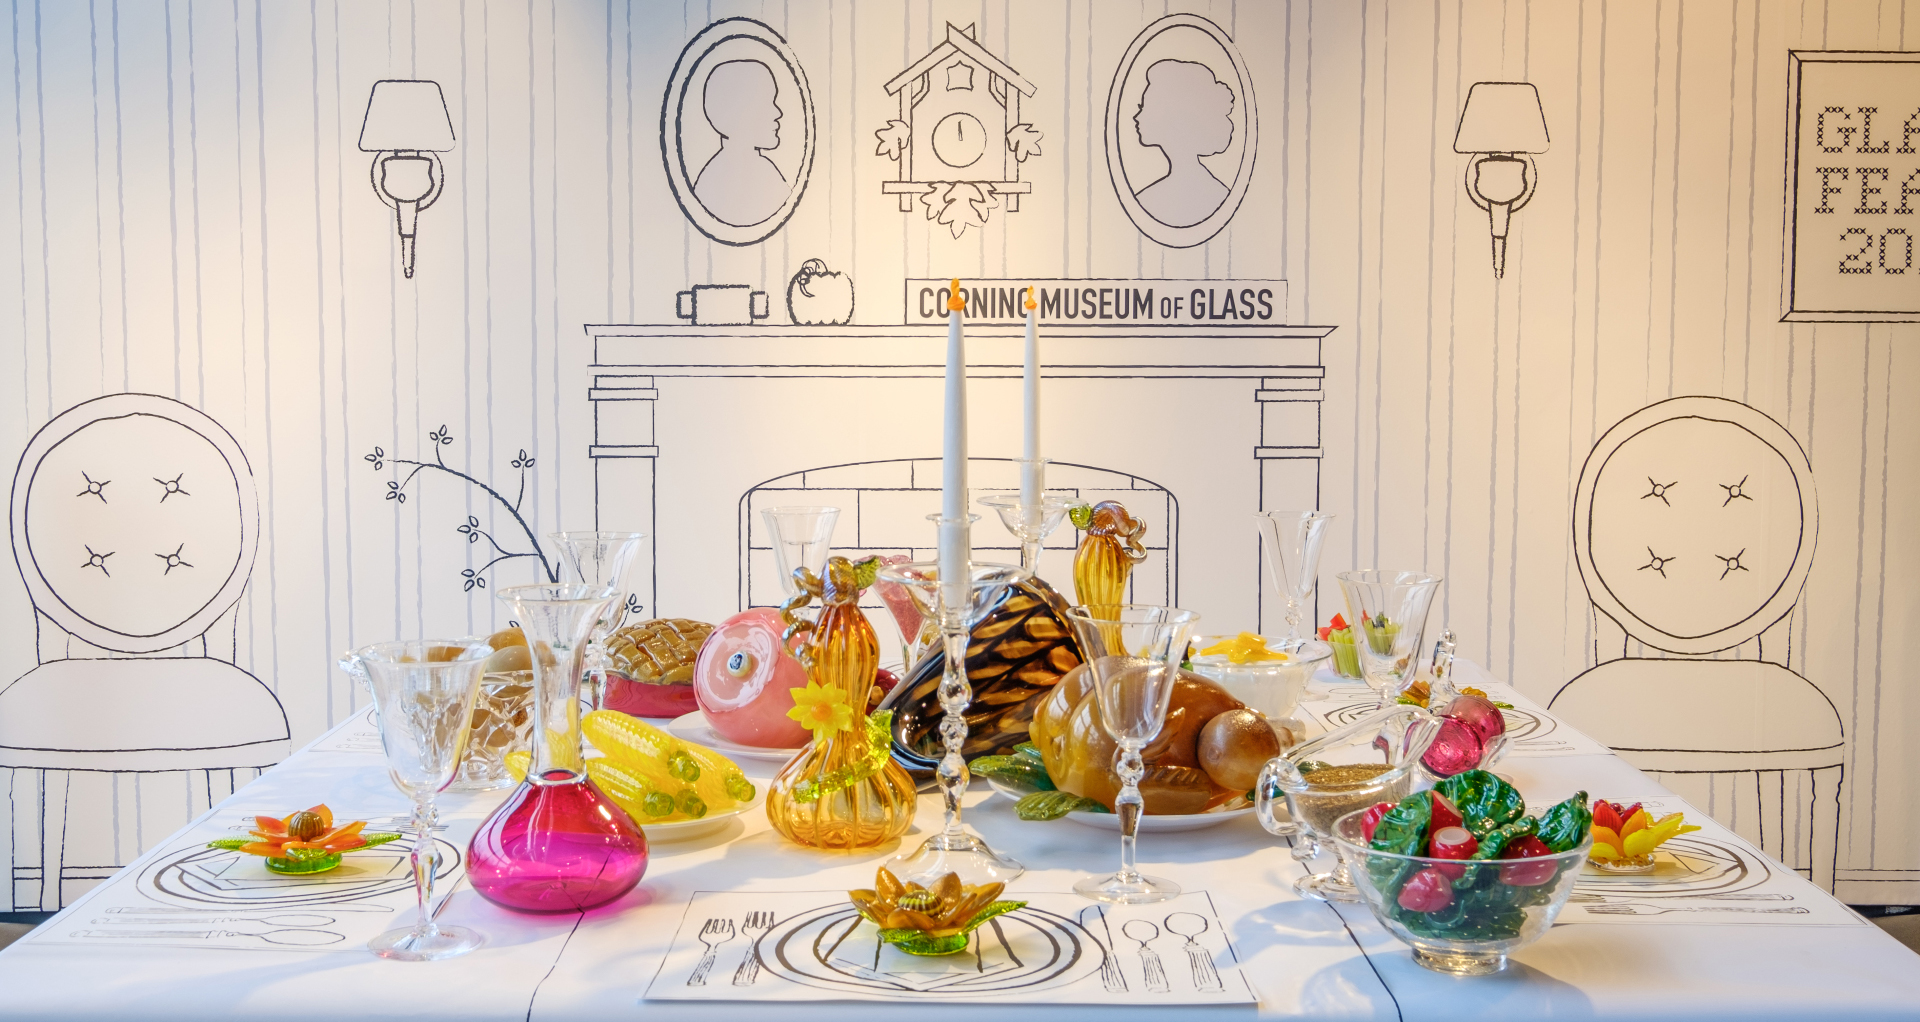 Turkey, smoked ham, and a cornucopia, all made out of glass, is set on a white tablecloth